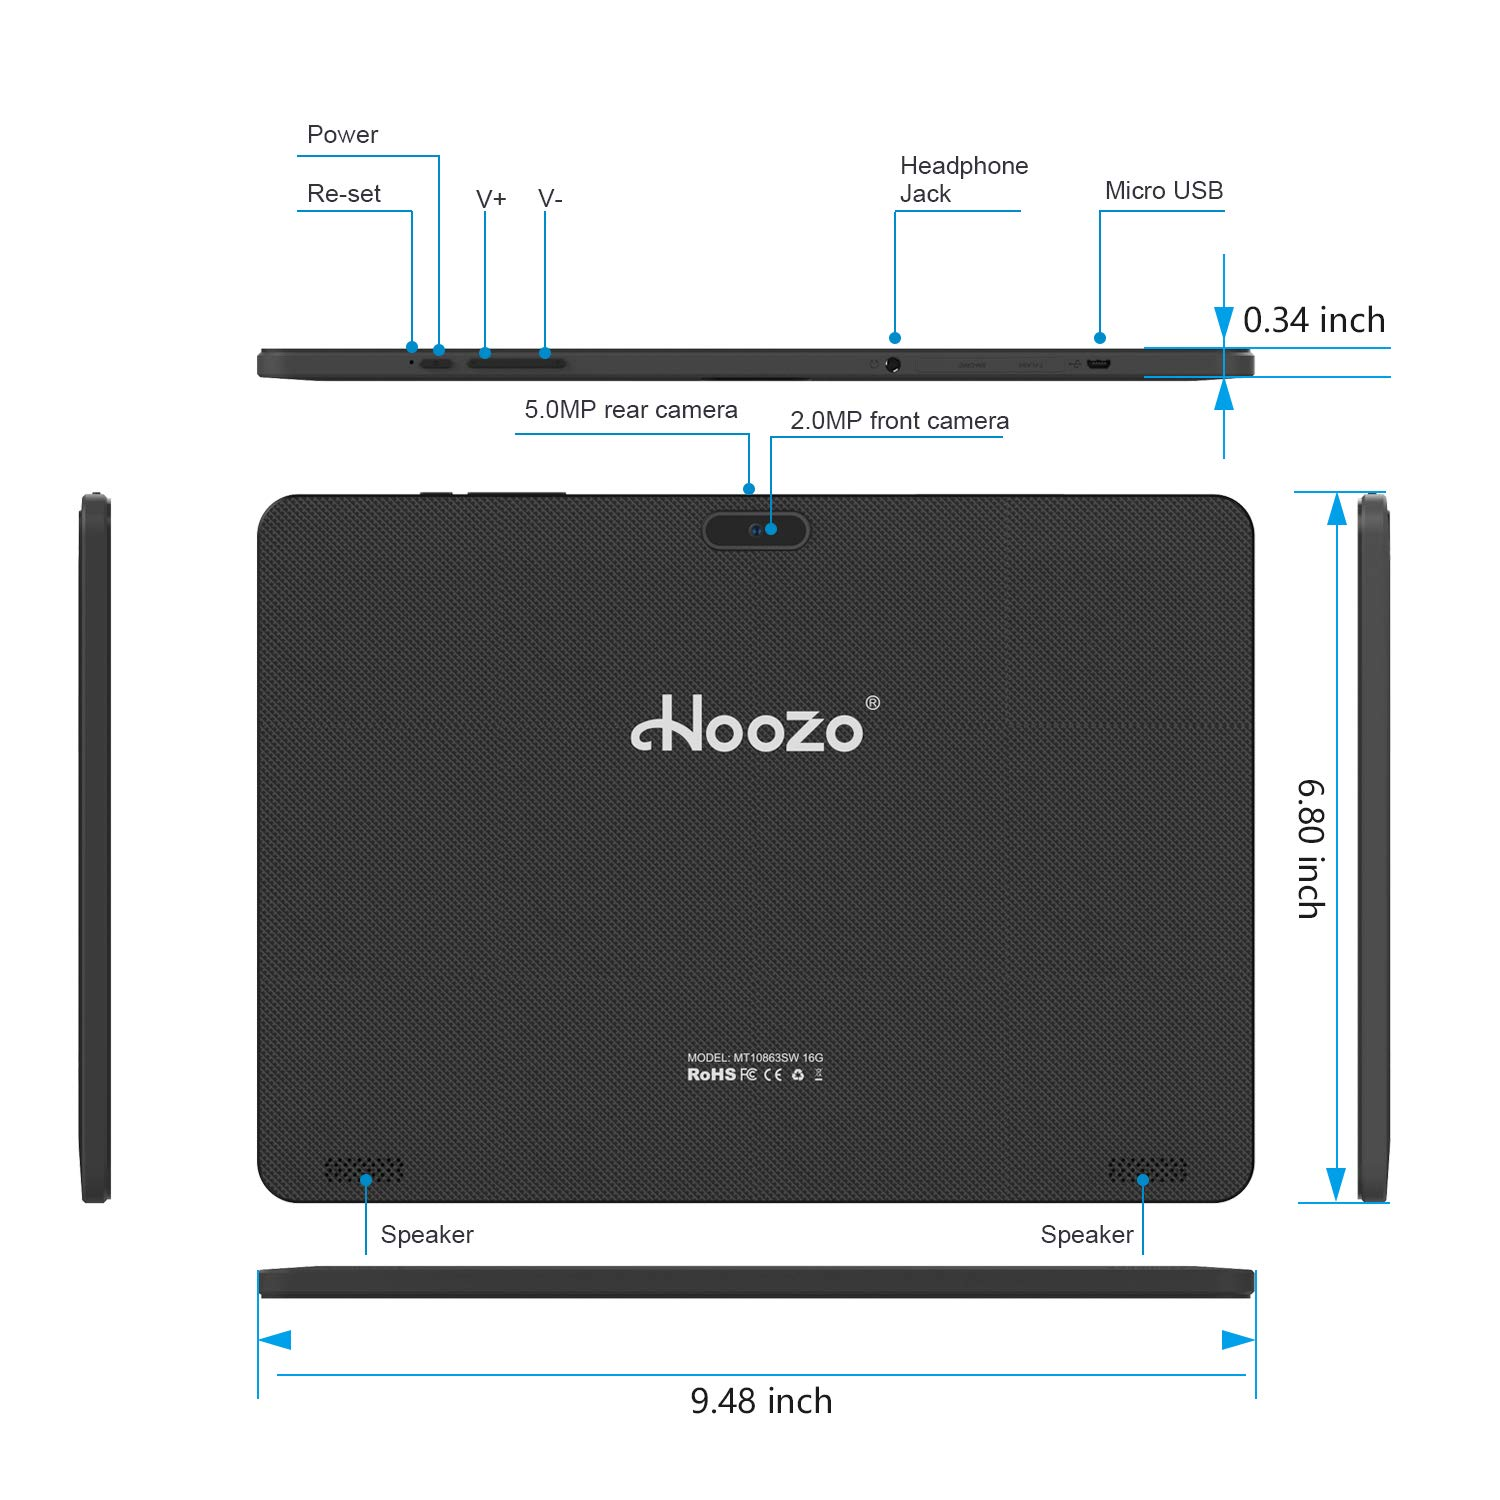 Android Tablet 10 Inch, Android 8.1 Go Unlocked Tablet PC with SIM Card Slots, 3G Phone Support, Quad Core, 1.3GHz, 16GB, 2MP+5MP Dual Camera, WiFi, Bluetooth, GPS by Hoozo (Image #10)